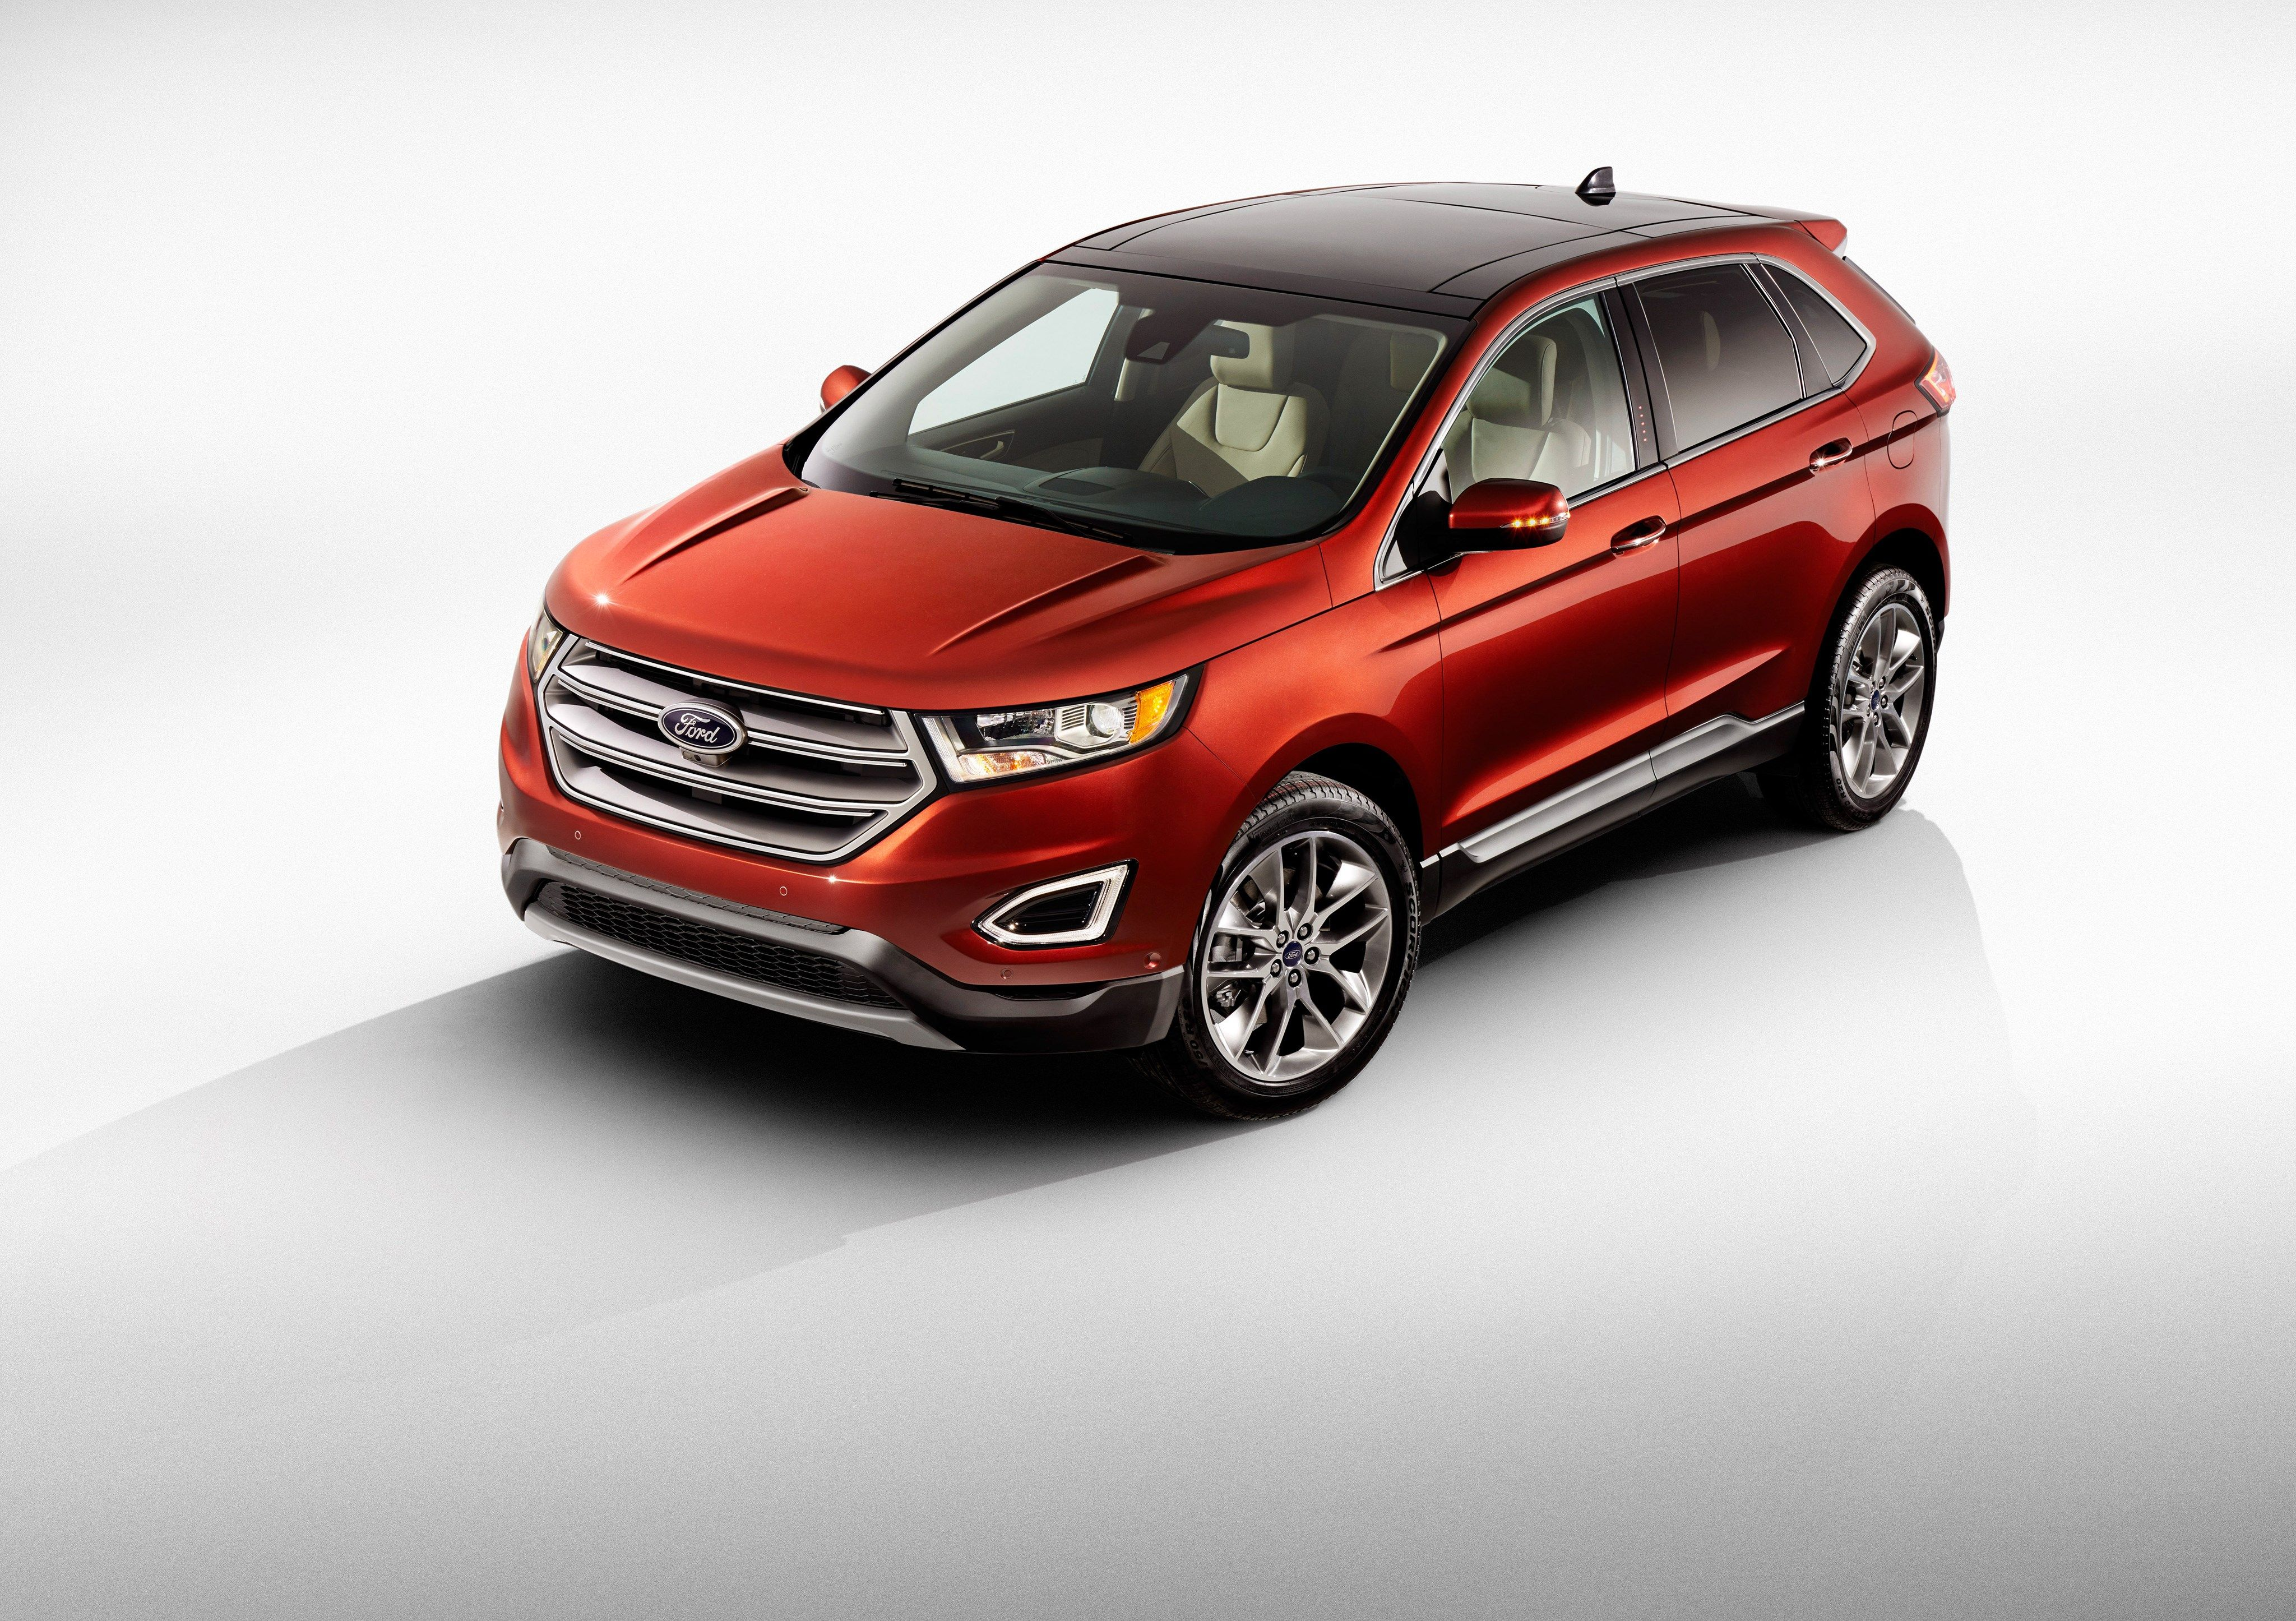 Are You Looking To Buy New Ford Car The All New Ford Edge Astonishing Performance With Three Powerful Engines Adaptive Cruise Control Lane Keeping System